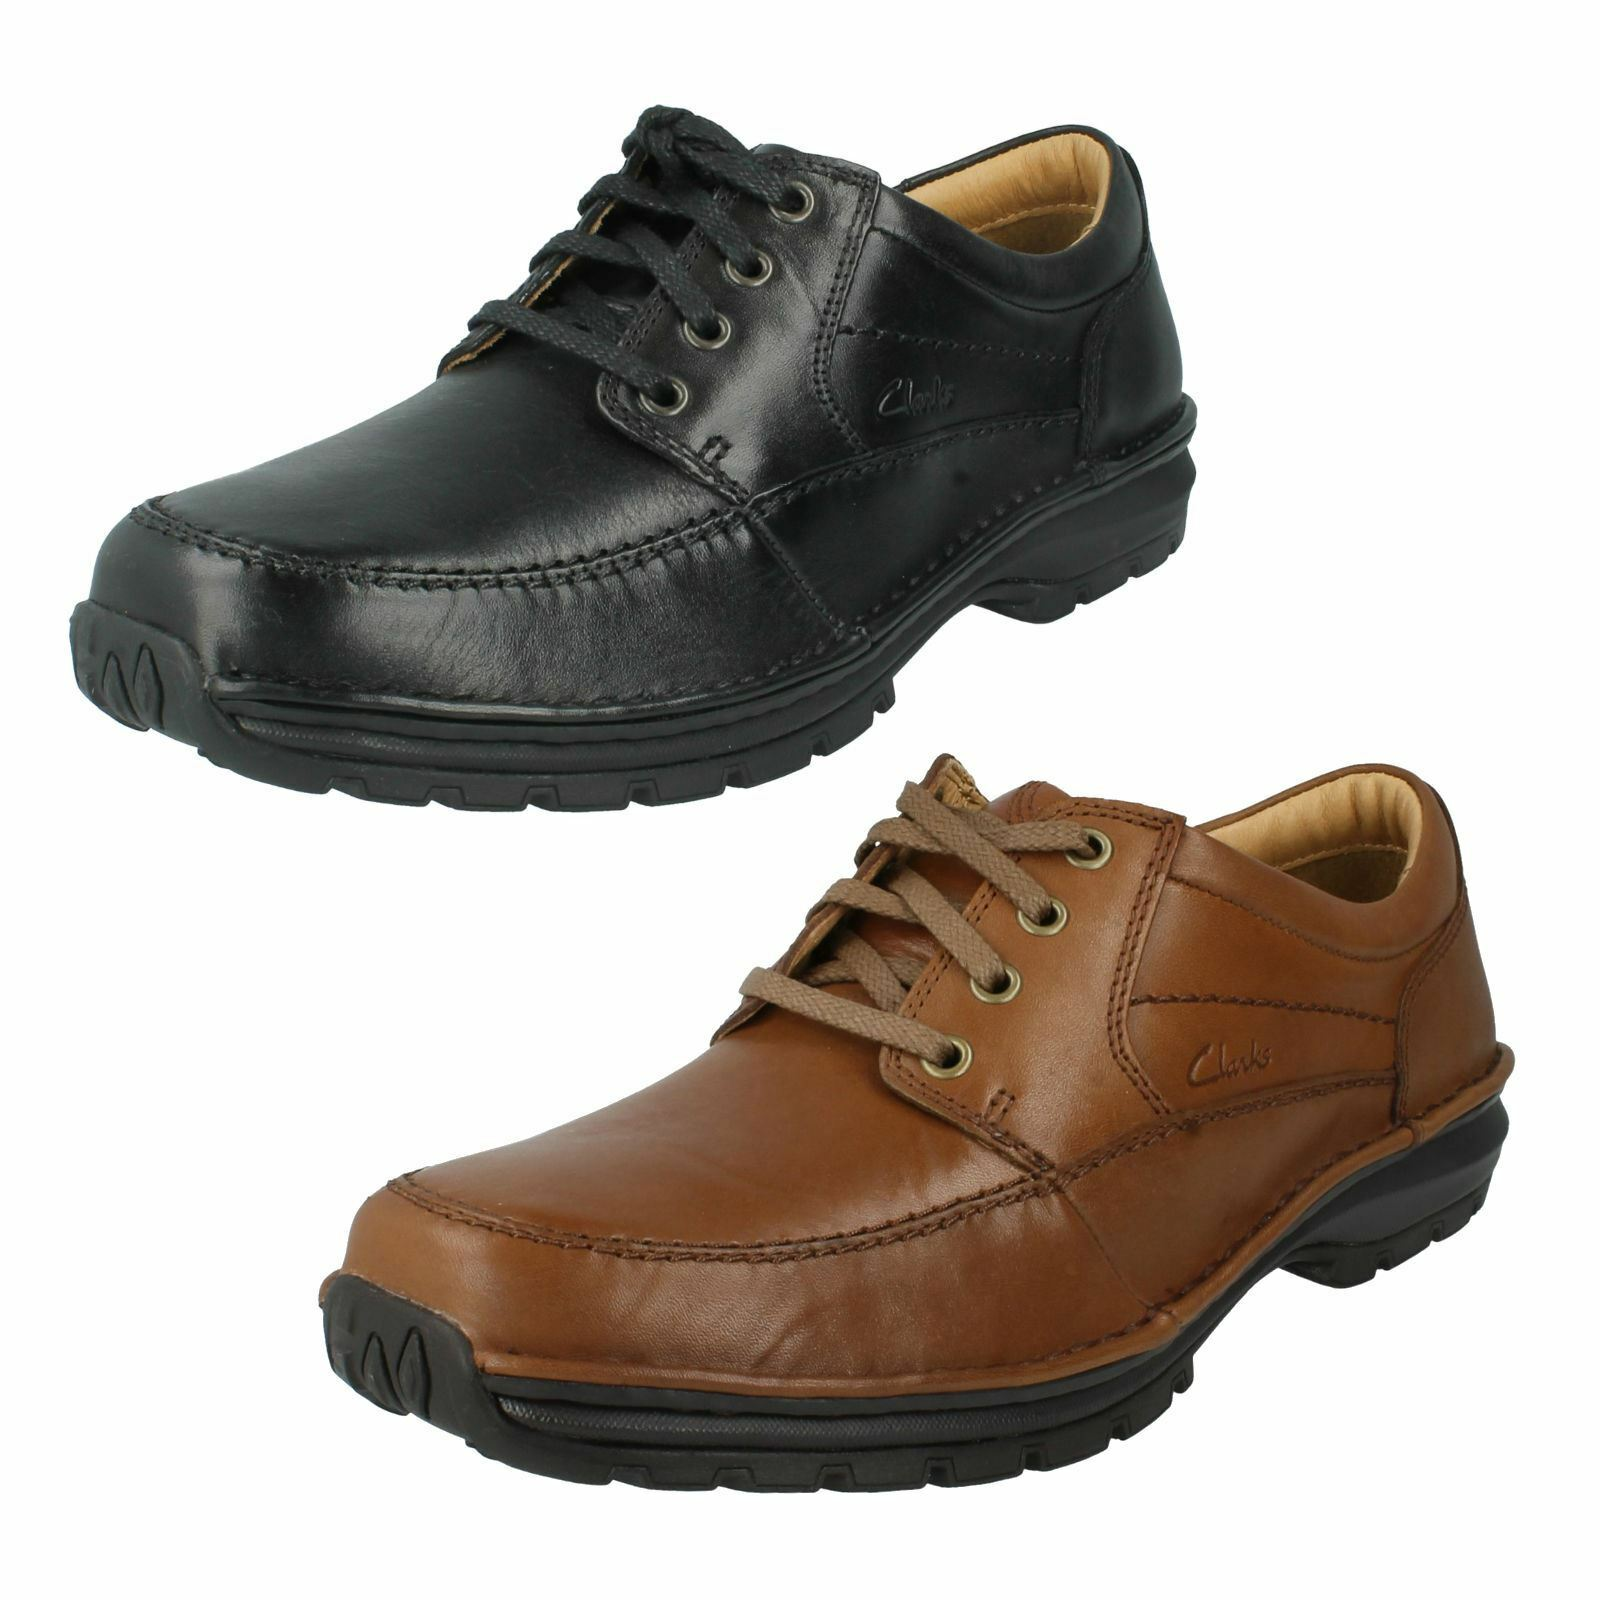 Men's Clarks Casual Shoes Sidmouth Mile